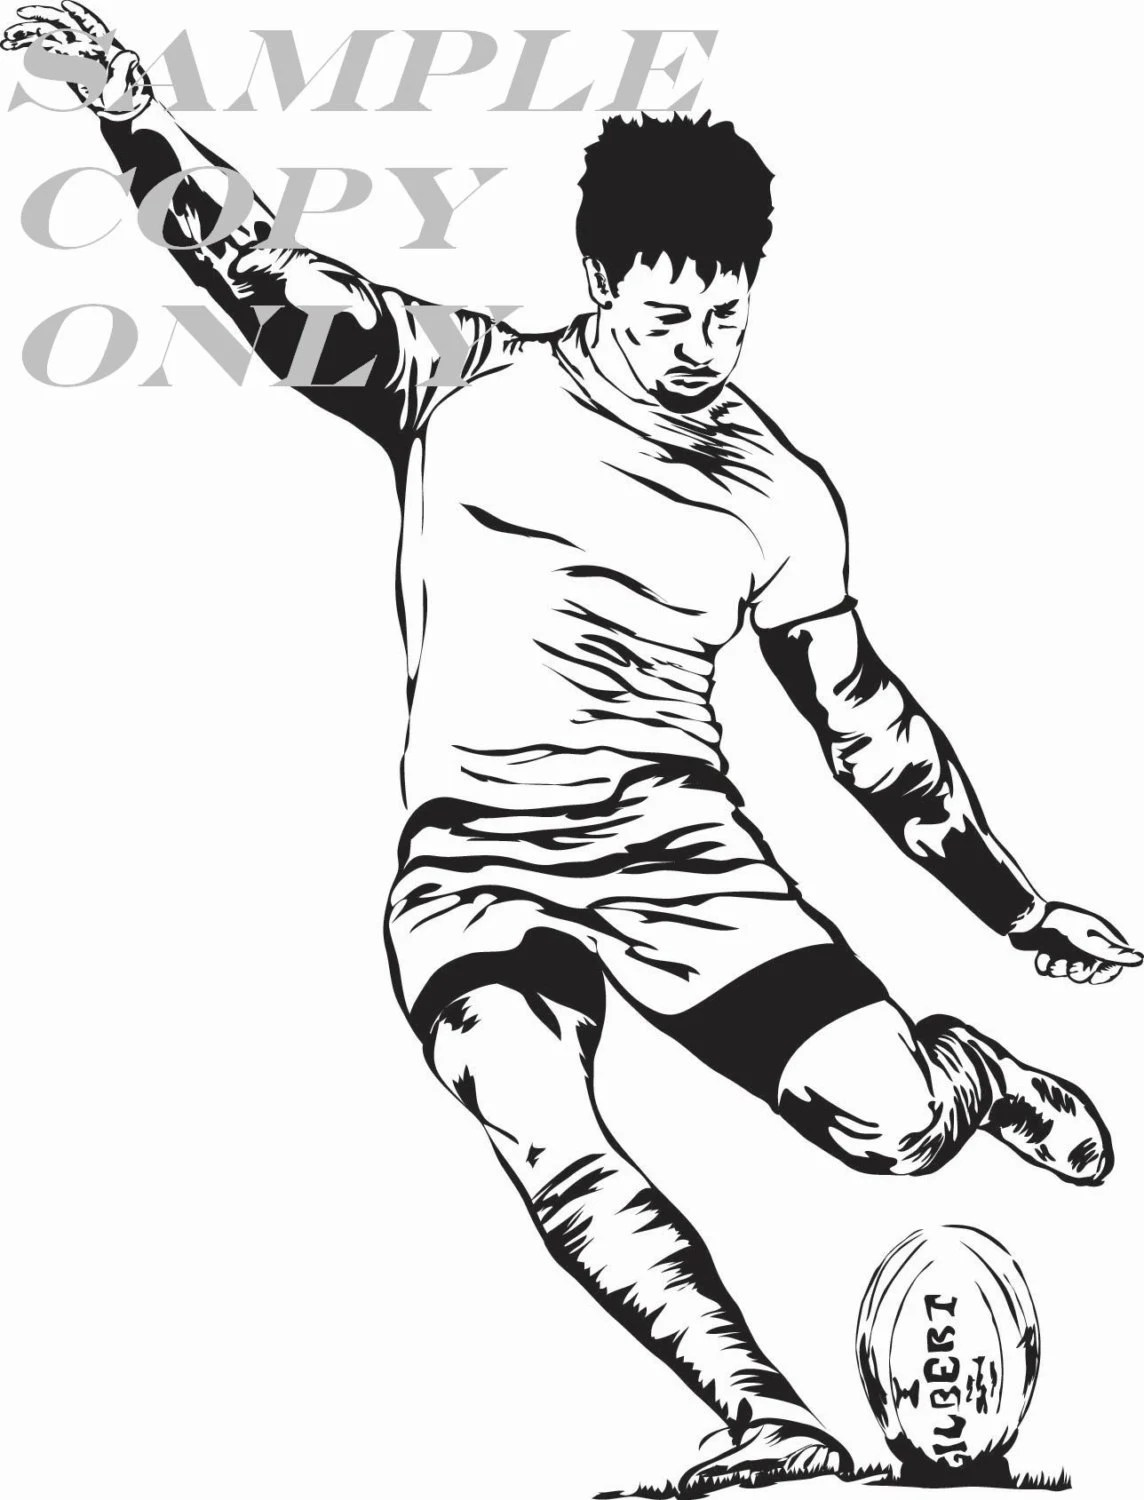 Rugby Kick Illustration Rugby Art Graphic Image by